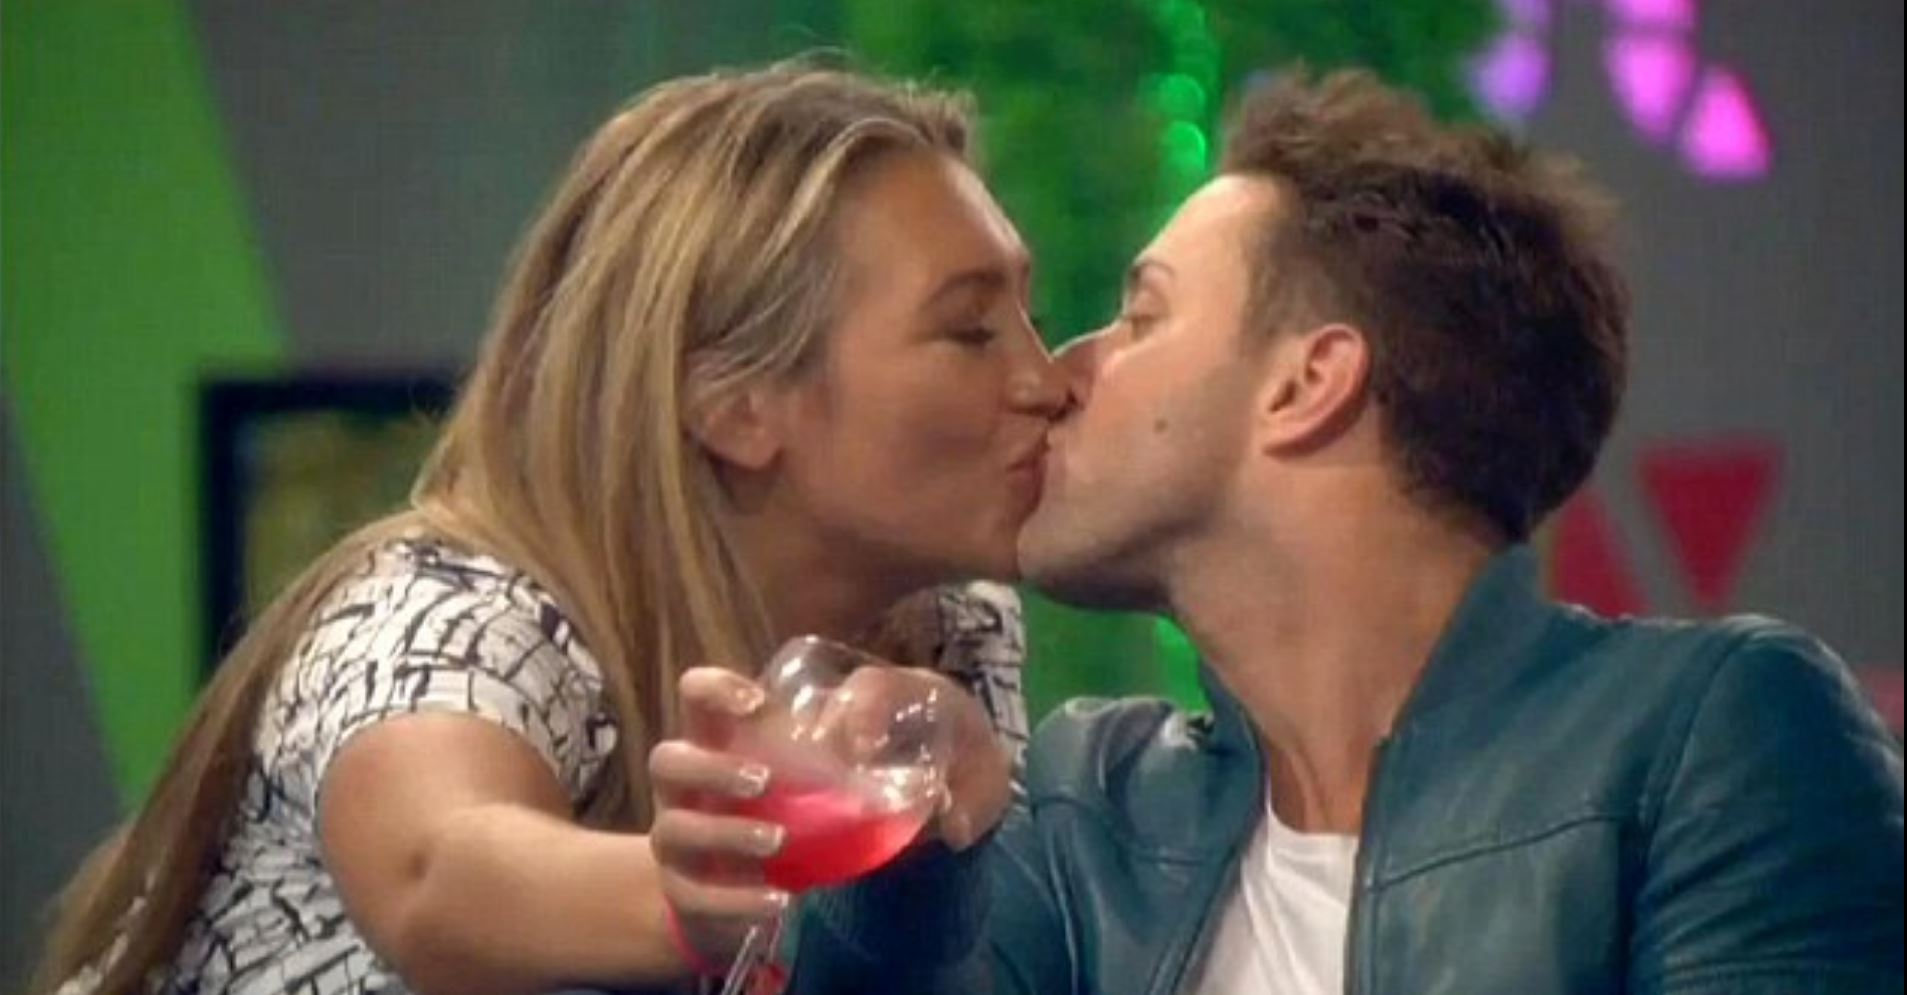 Celebrity Big Brother 2014: The moment Lauren Goodger and Ricci Guarnaccio kiss (again)